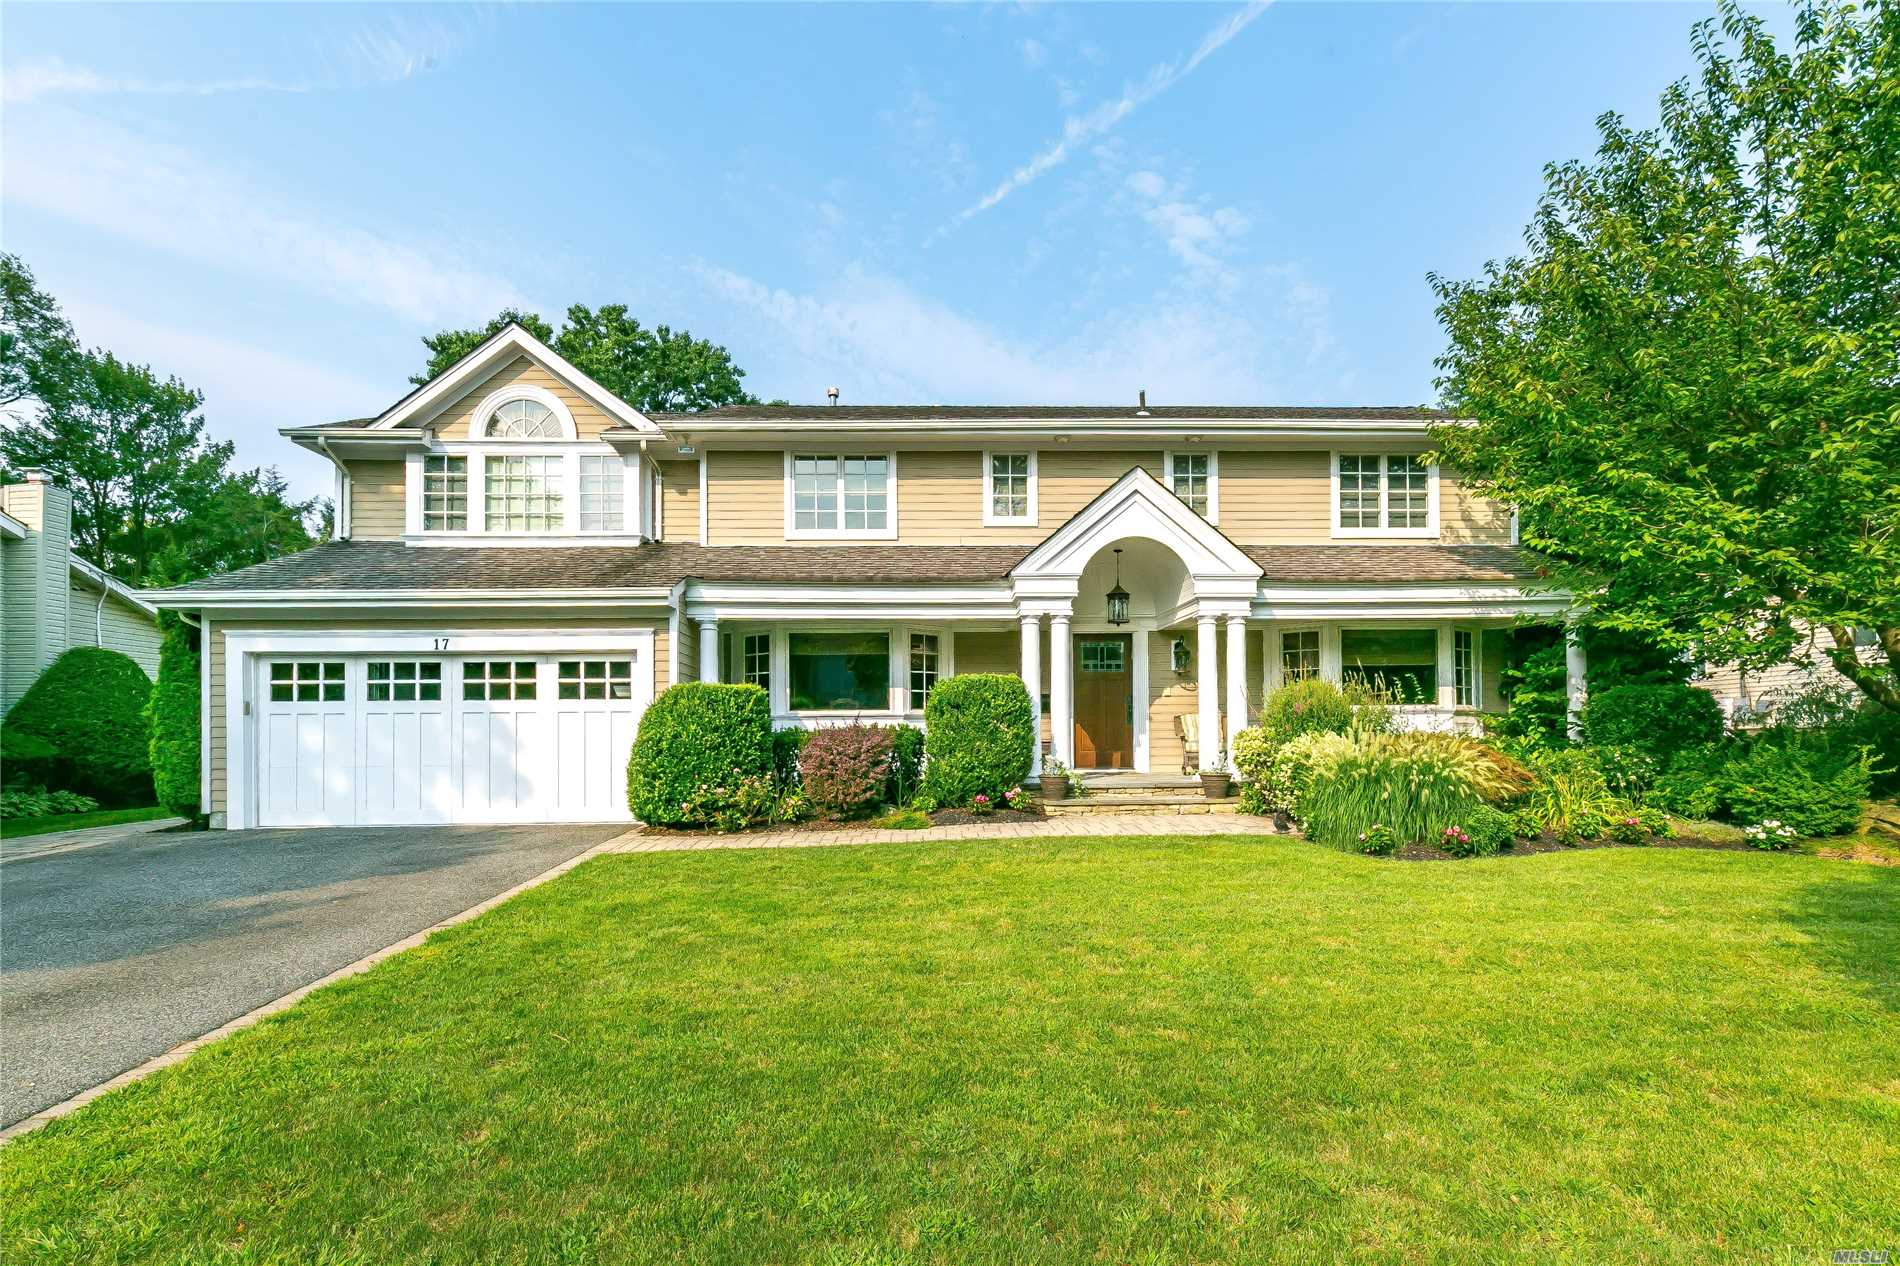 Gorgeous Move-In Ready, Expanded Center Hall Colonial In Jericho Schools. This Home Boasts 4 Bedrooms/3.5 Baths, Dedicated Office, And Newly Renovated Gourmet Eik W/Top-Of-The-Line Ss Appliances. Master Br Suite W/His & Hers Walk In Closets & Sep. Sitting Rm; Additional Master Suite As Well. A True Entertainers Backyard W/Beautifully Flat/Landscaped Ppty, Heated Ig Pool, And Built-In Outdoor Kitchen. Hardwood Floors, Finished Basement, Whole House Generator. Cantiague Elem. A Must See!!